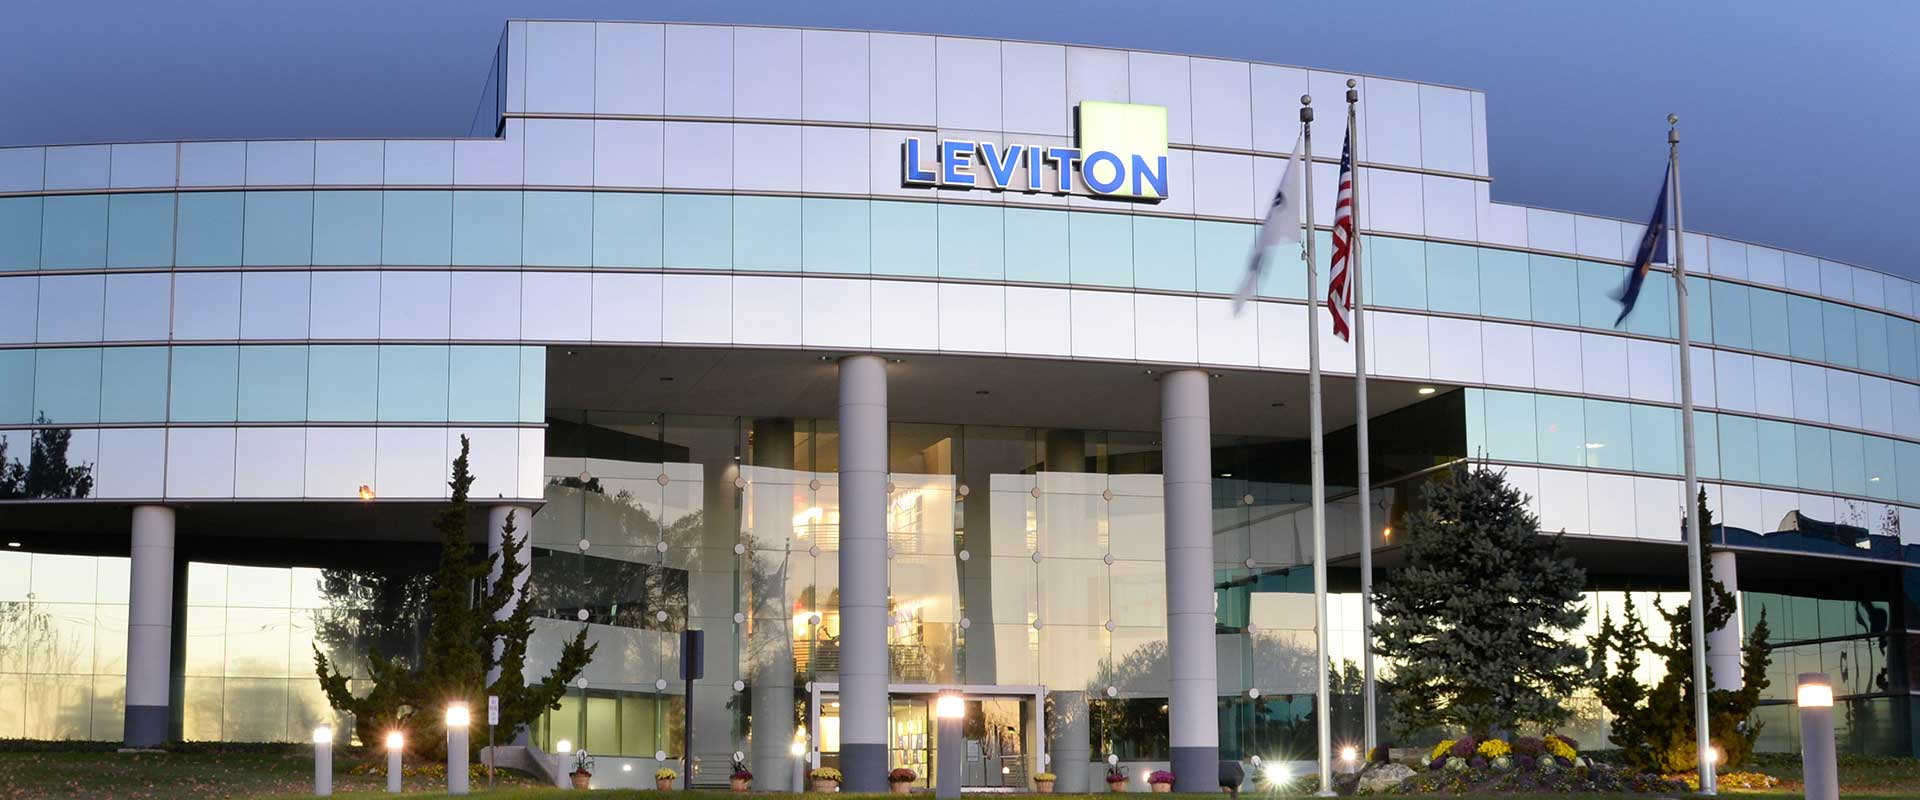 Leviton.com - Dimmers, GFCI\'s, Outlets, Lighting Controls, Wiring ...